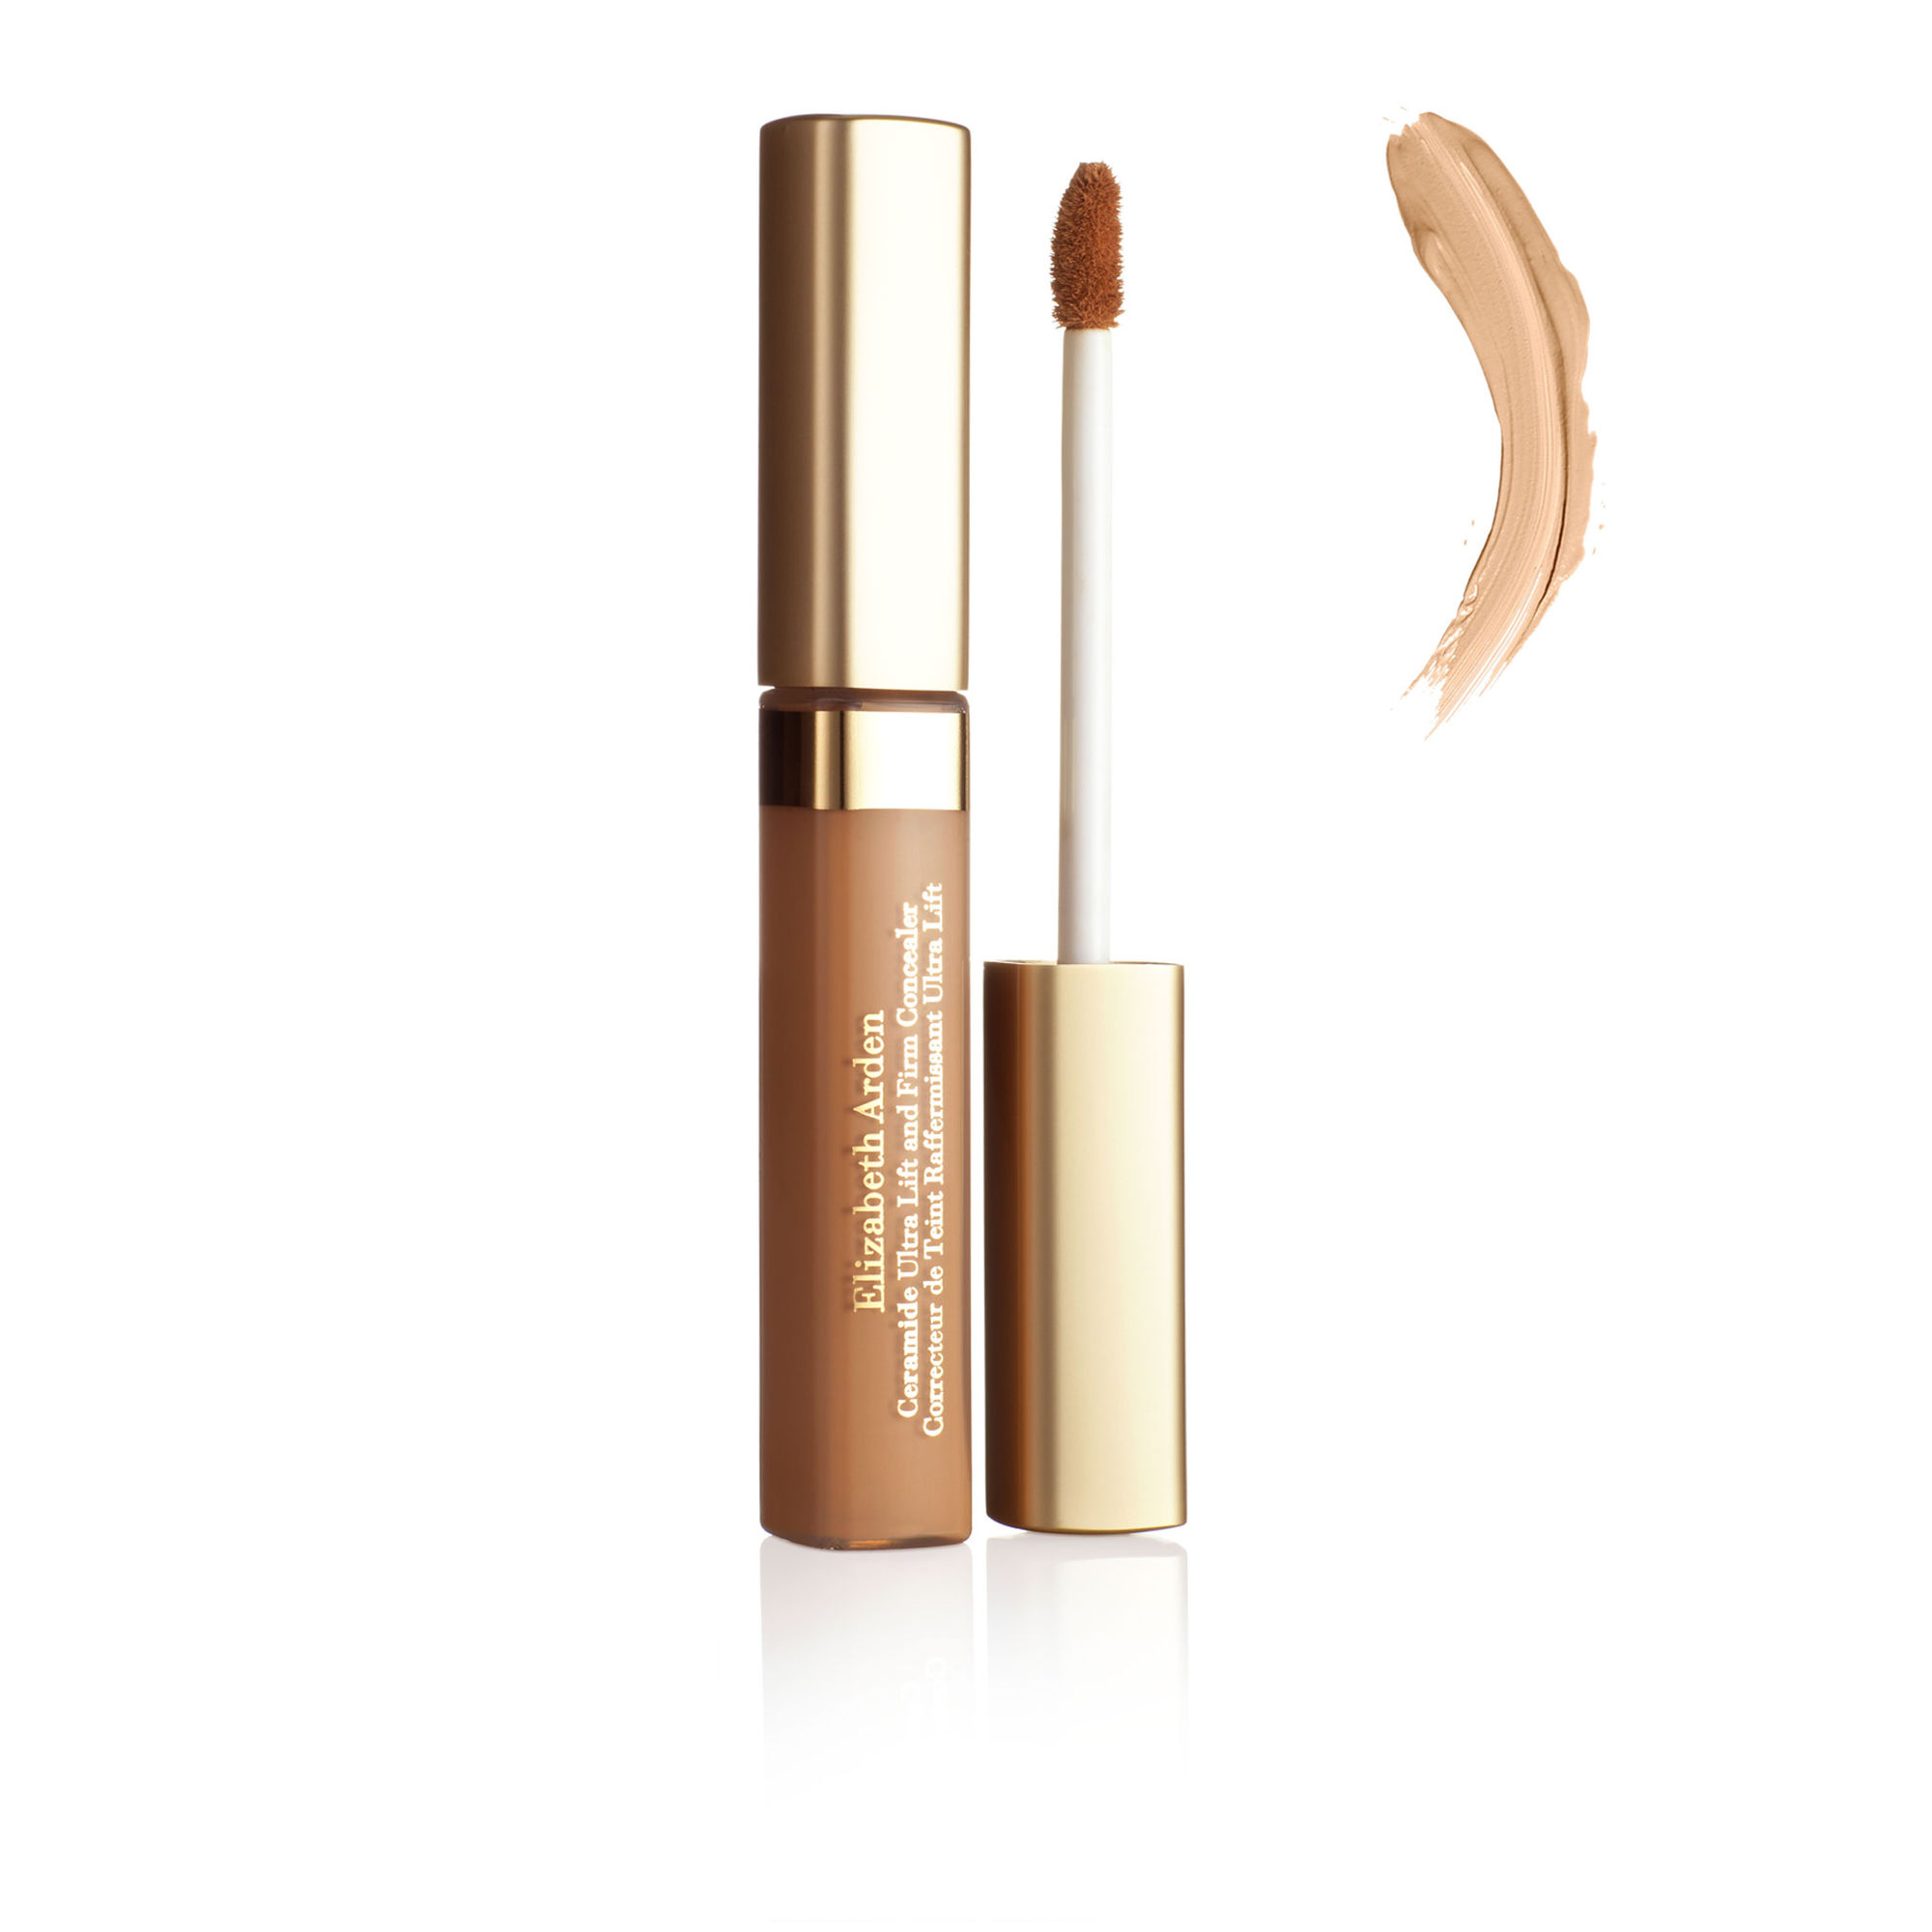 9 Best Concealers for 2017 - Reviews of Top Under Eye Concealer ...